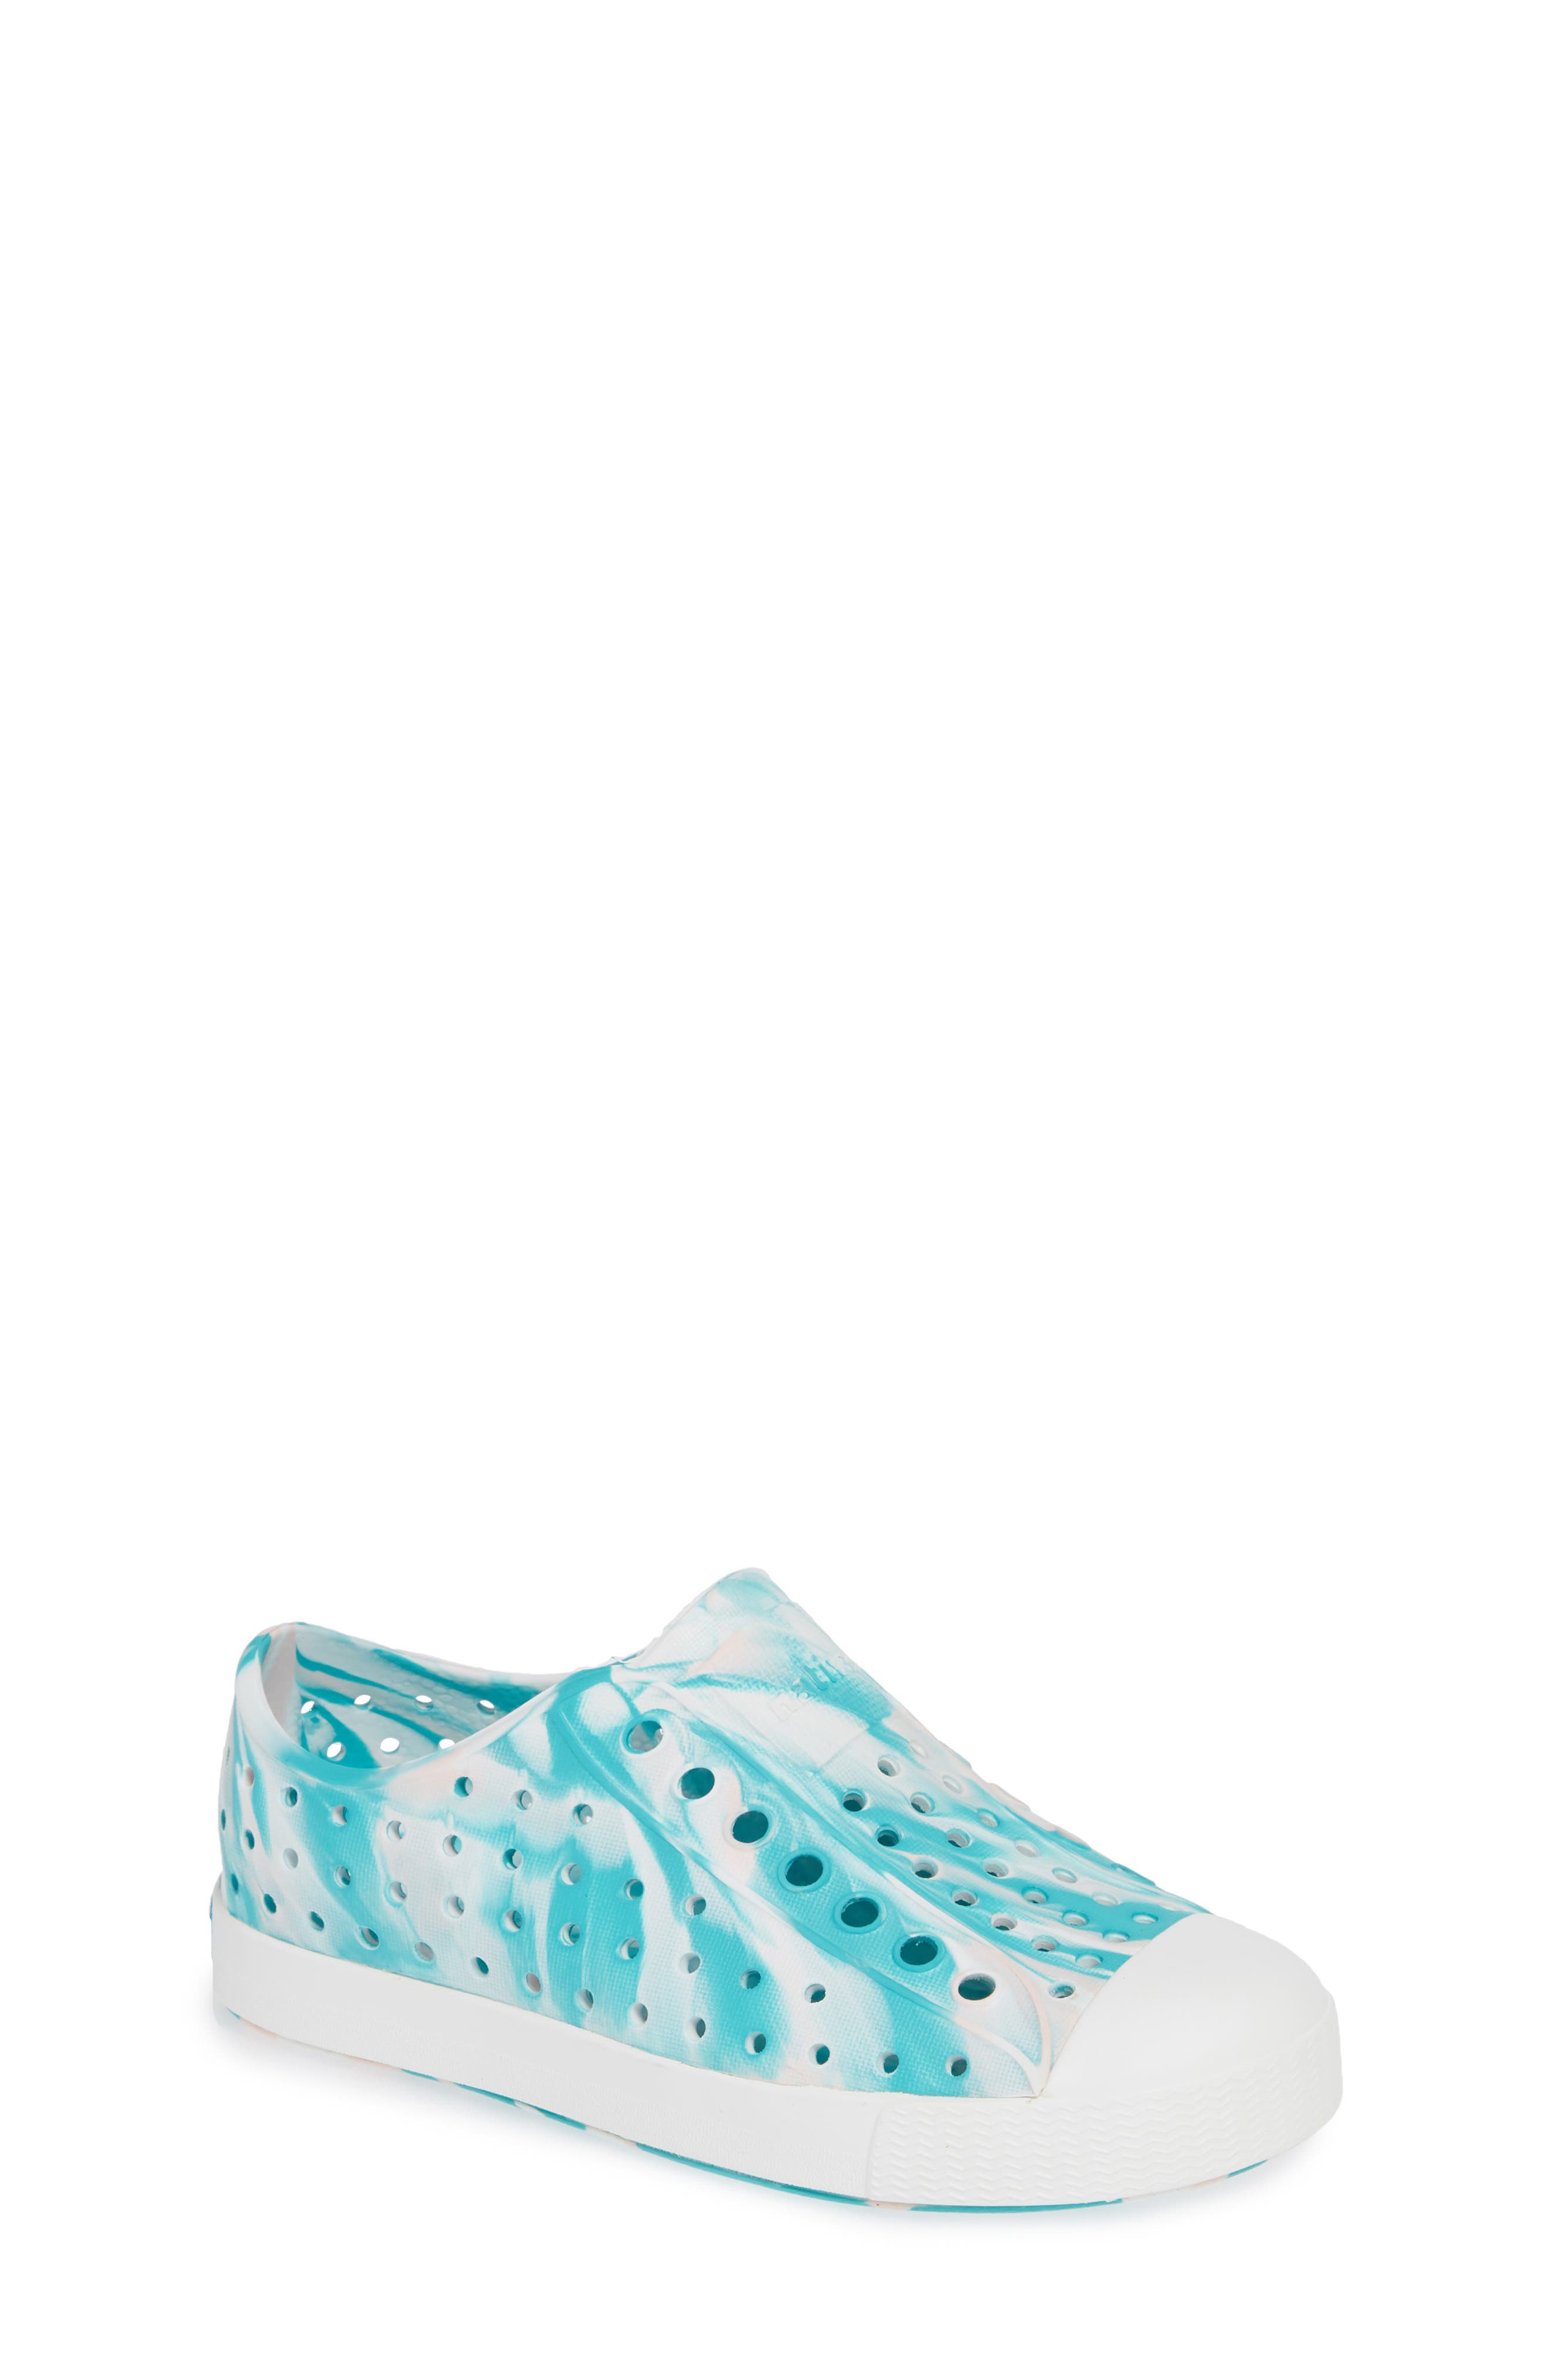 Jefferson - Marbled Perforated Slip-On,                         Main,                         color, GLASS GREEN/ WHITE MARBLED